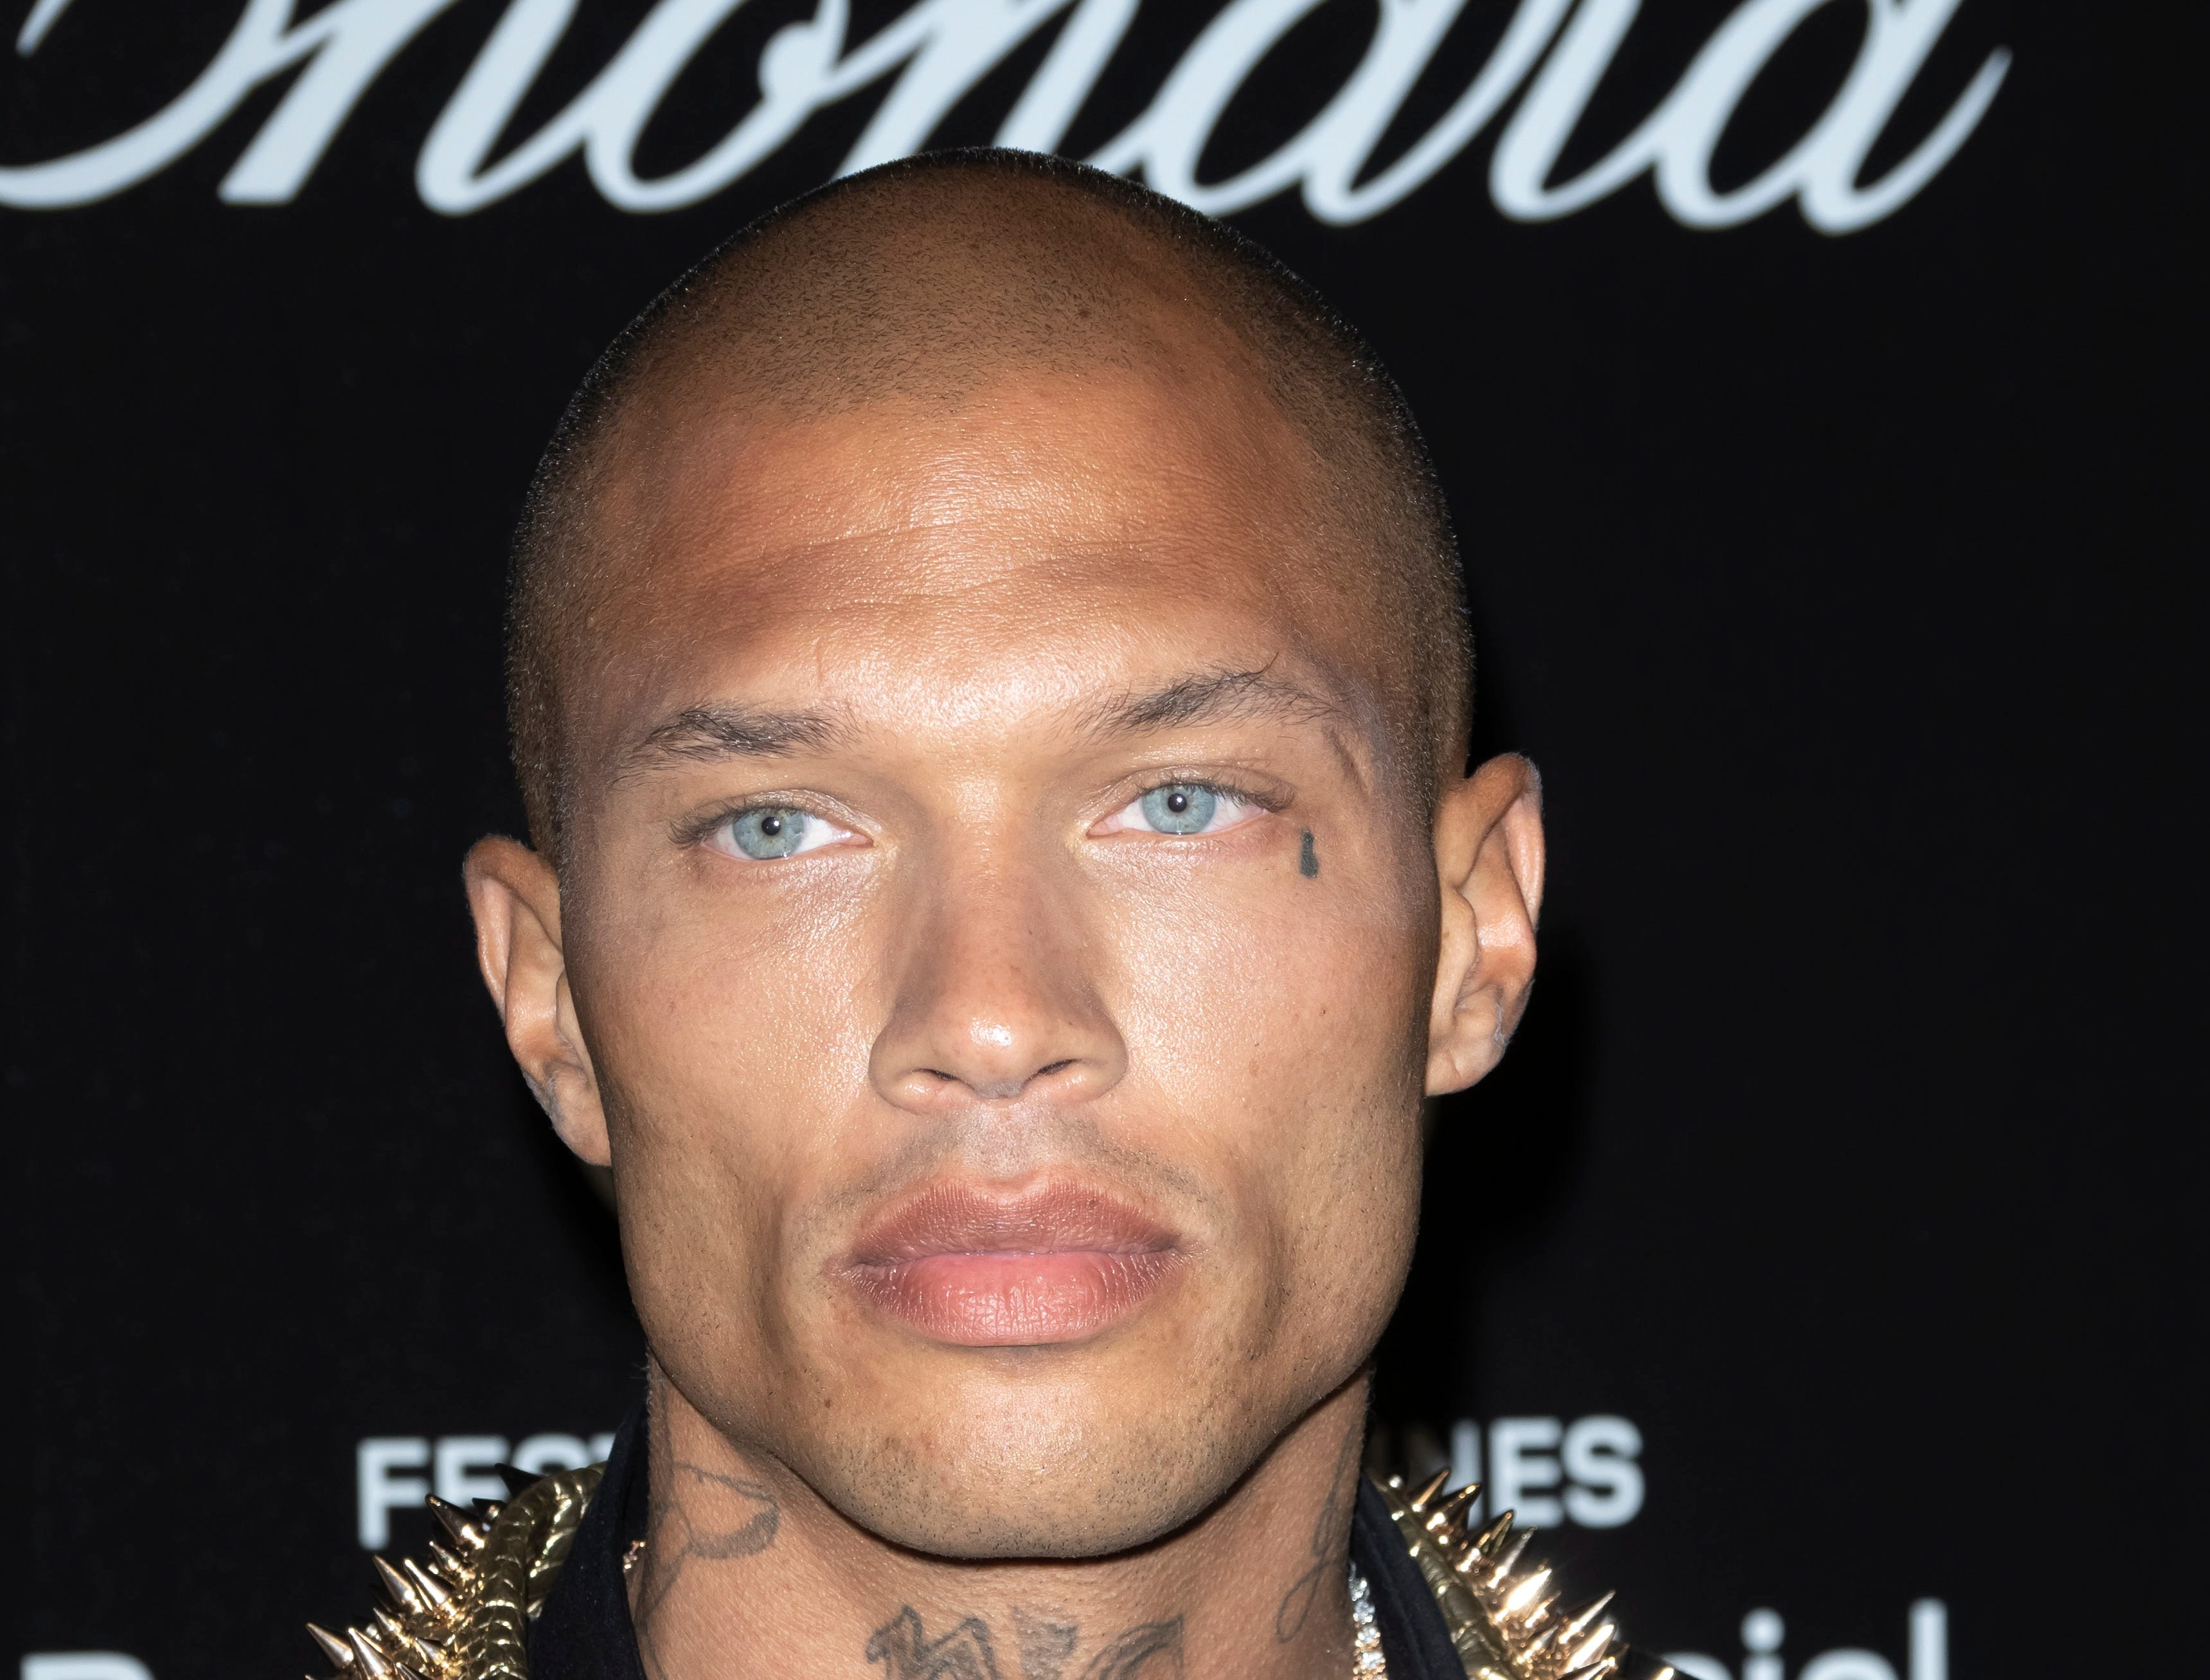 Model Jeremy Meeks attends the Chopard Love Party during the 72nd annual Cannes Film Festival in Le Cannet, France on May 17, 2019.